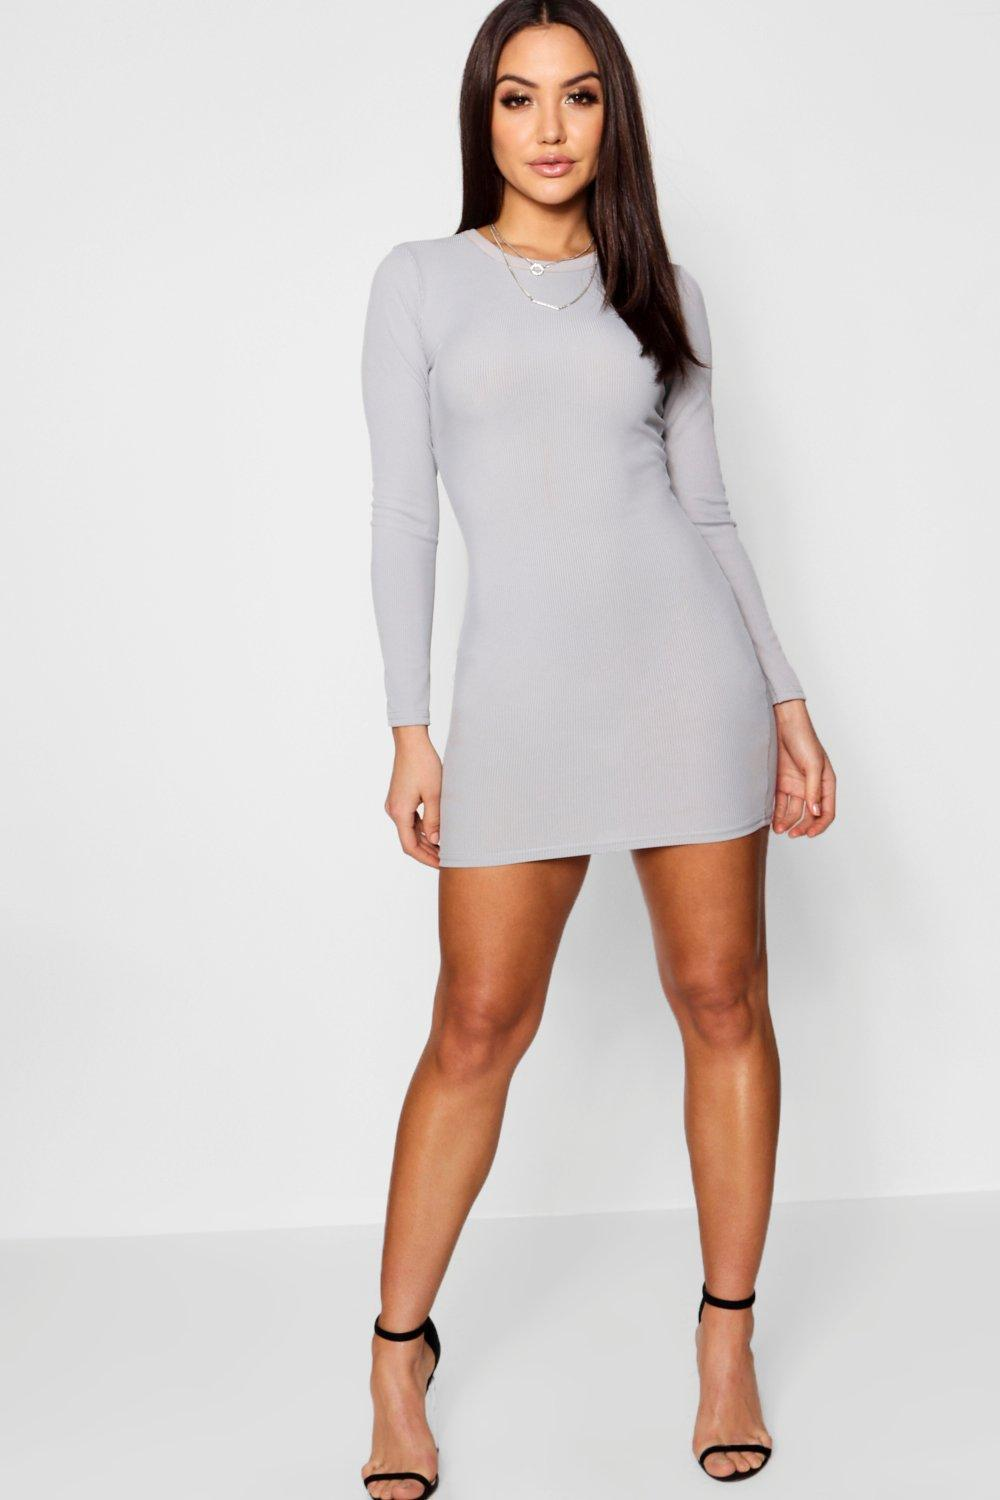 7cbcb0def3f Lyst - Boohoo Ribbed Basic Long Sleeve Bodycon Dress in Gray